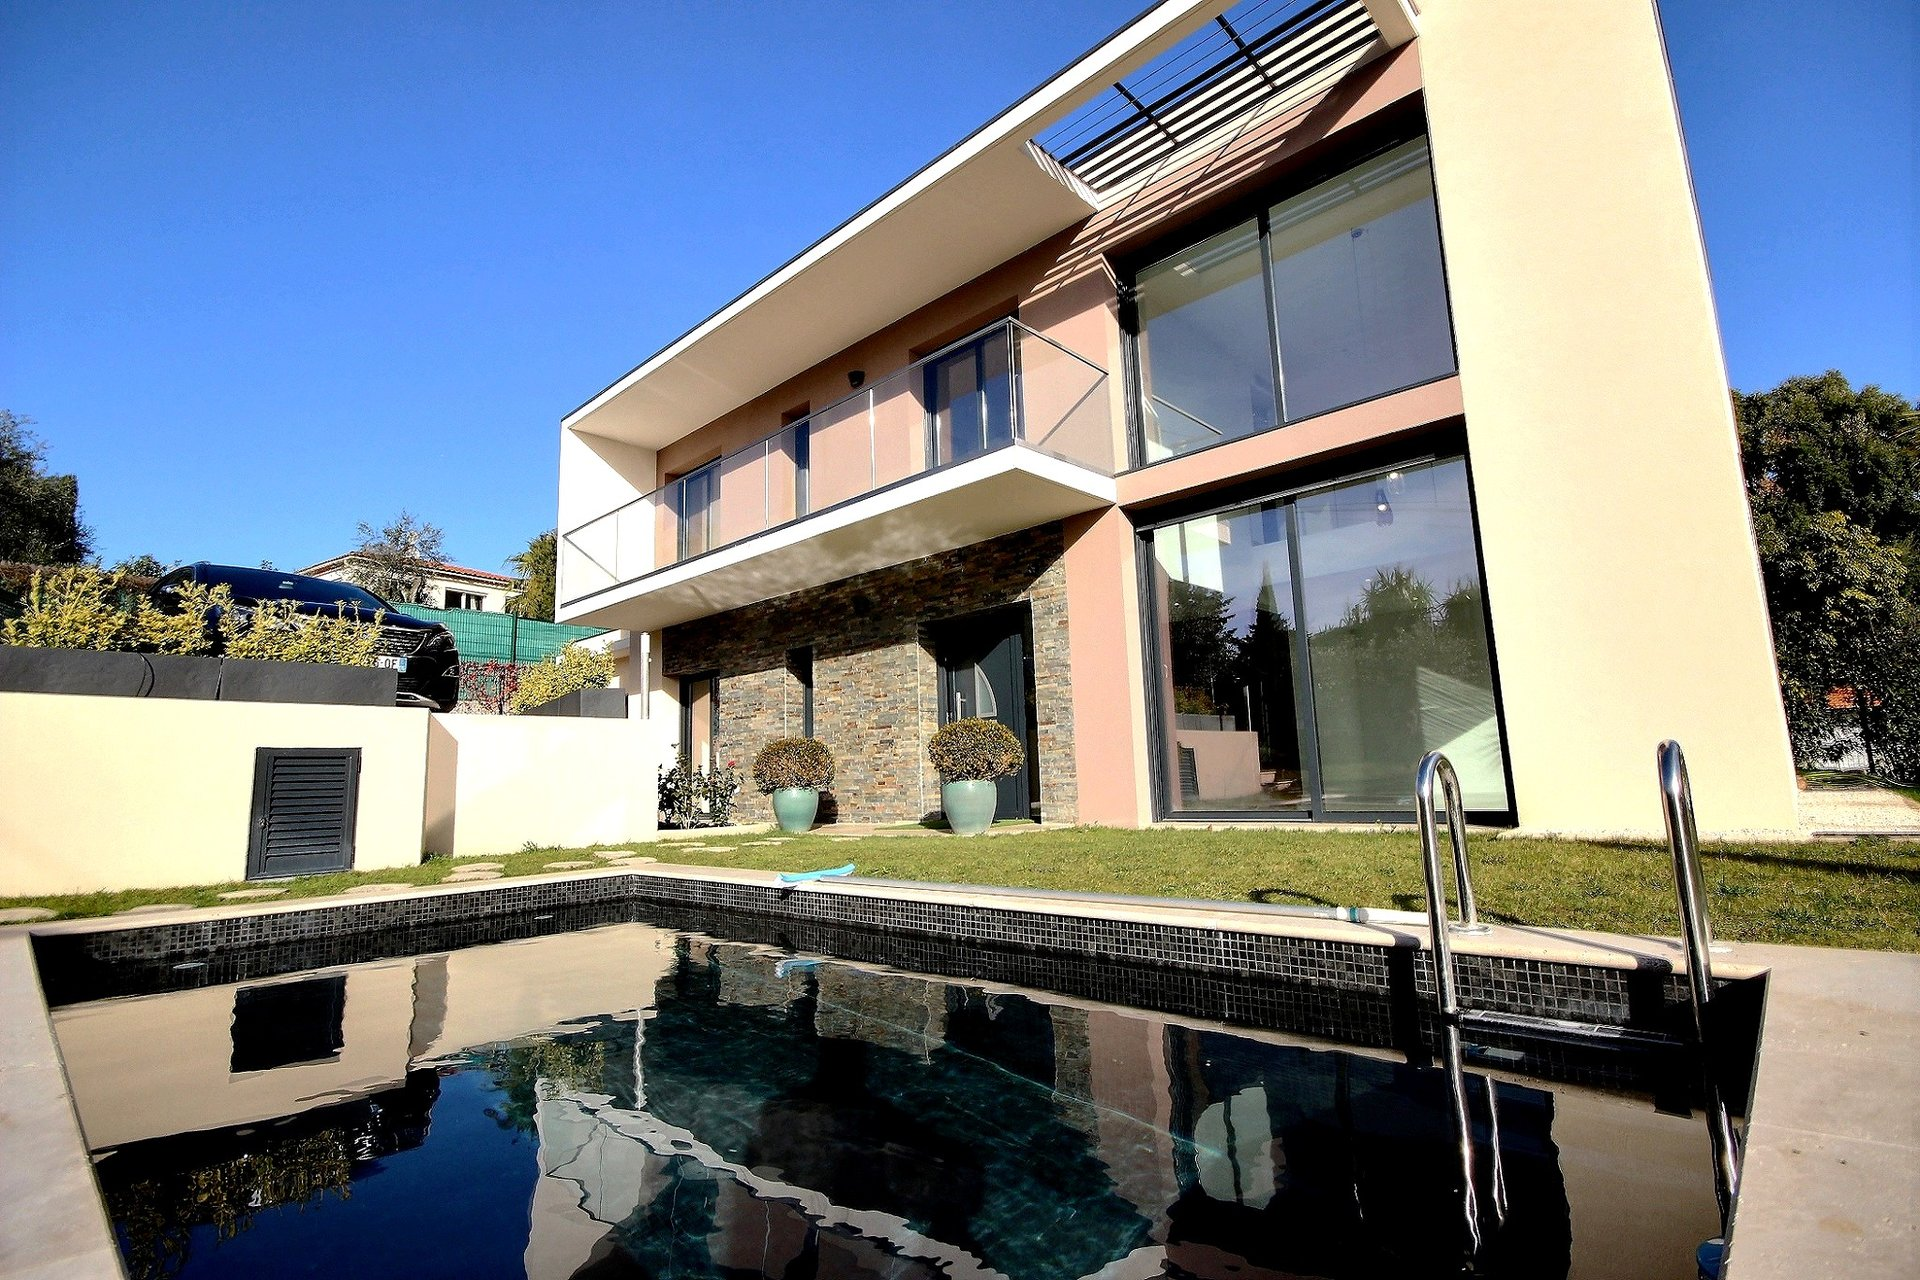 France Côte d'Azur Antibes Résidentiel Villa Contemporaine à vendre